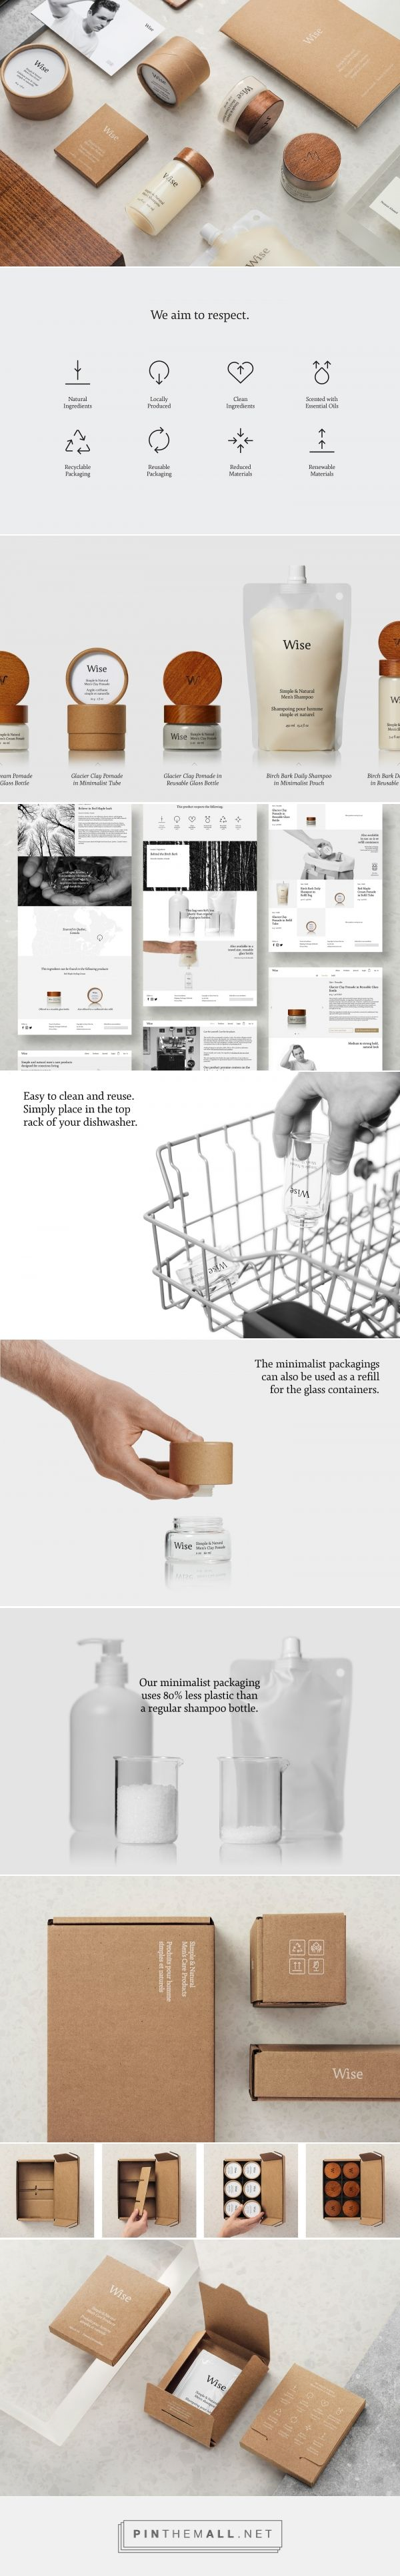 Using 80% less plastic - Wise Men´s Care packaging design by Ethos - http://www.packagingoftheworld.com/2017/10/wise-mens-care.html